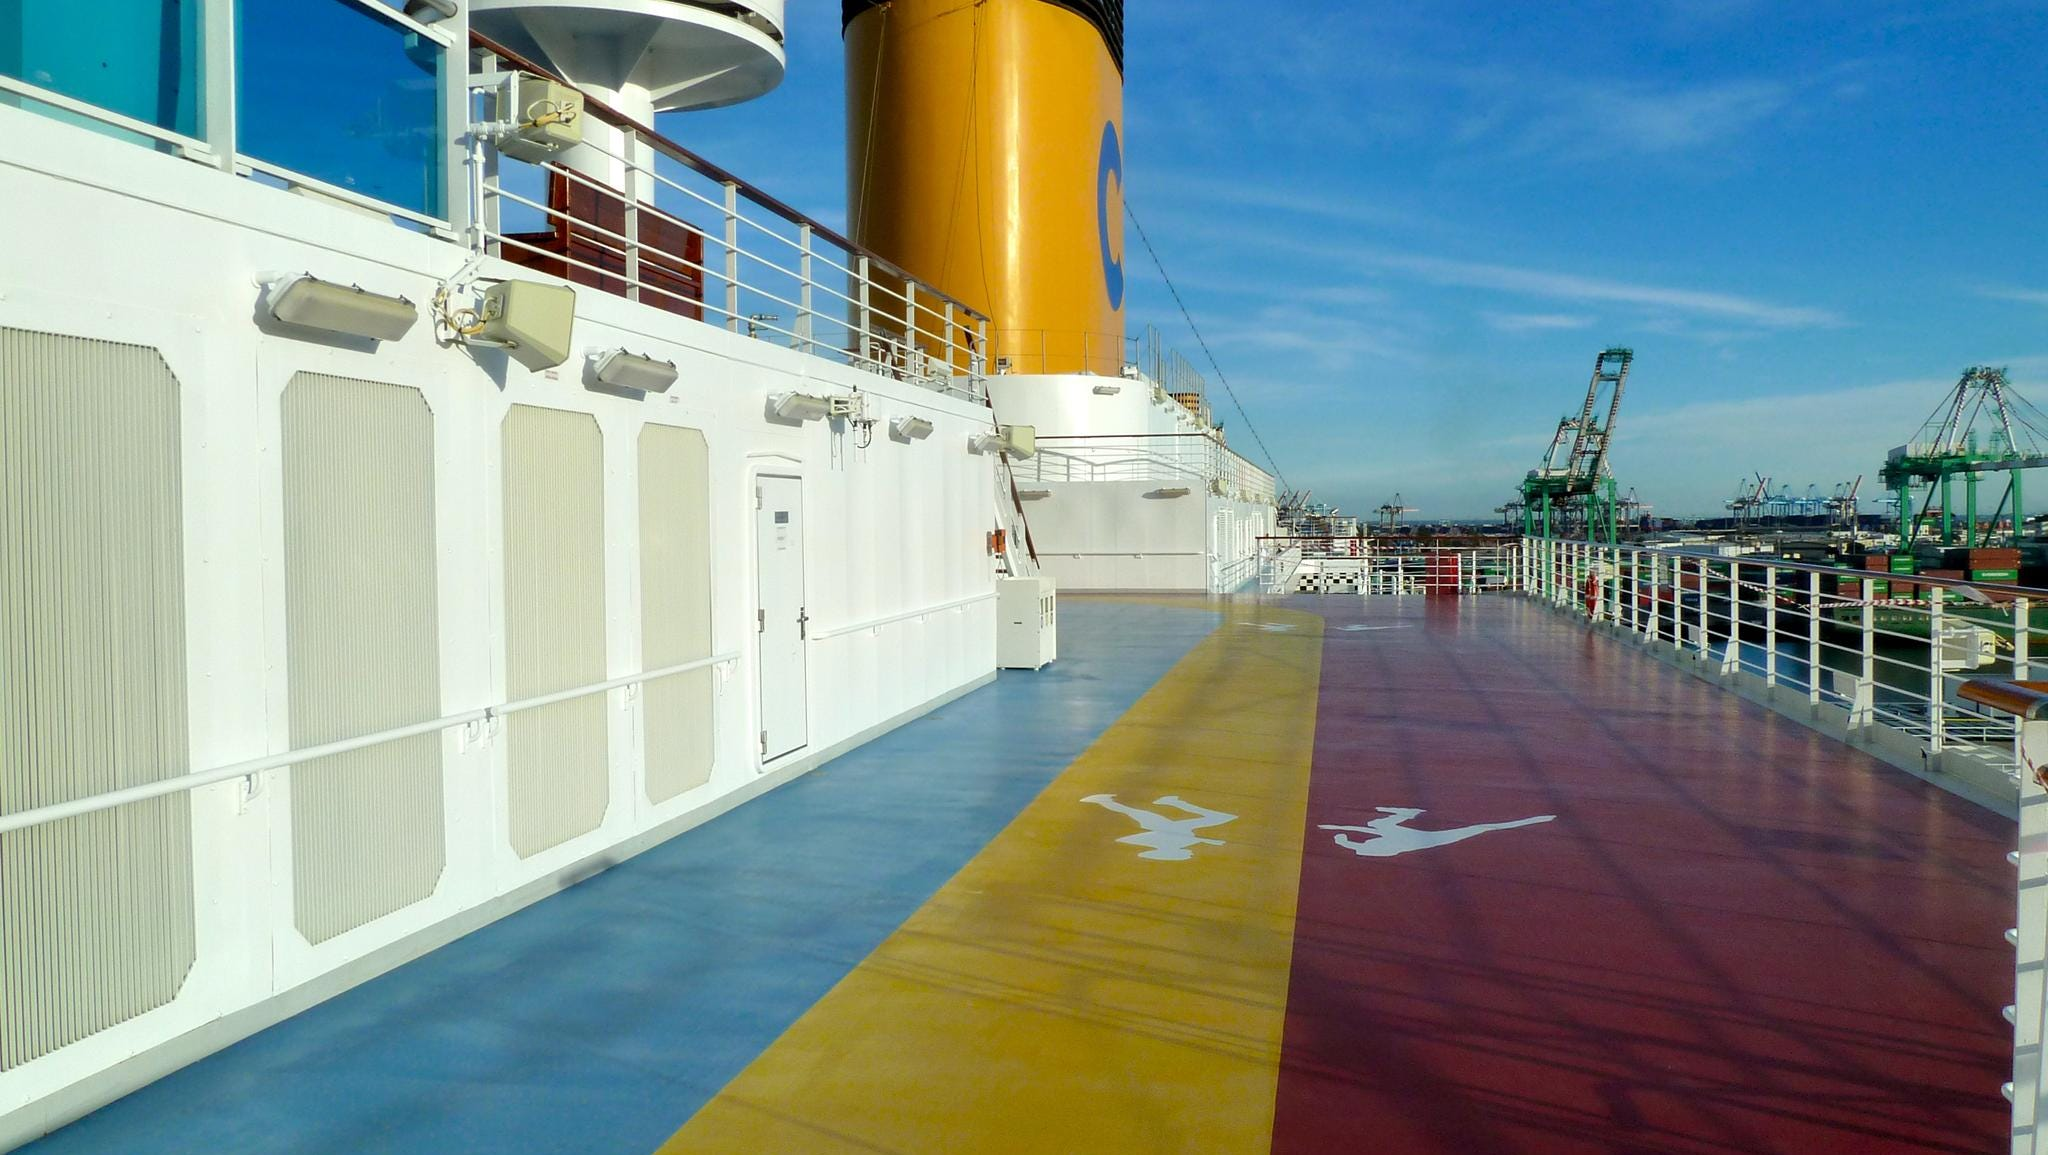 Terraces on Fuxia Deck continue on either side of the Magrodome-covered, mid-ships Lido Azzurro Blu pool area. The midships portion of this level has a dual roller skating (red) and jogging (yellow) track that surrounds the Girasole Deck platform.